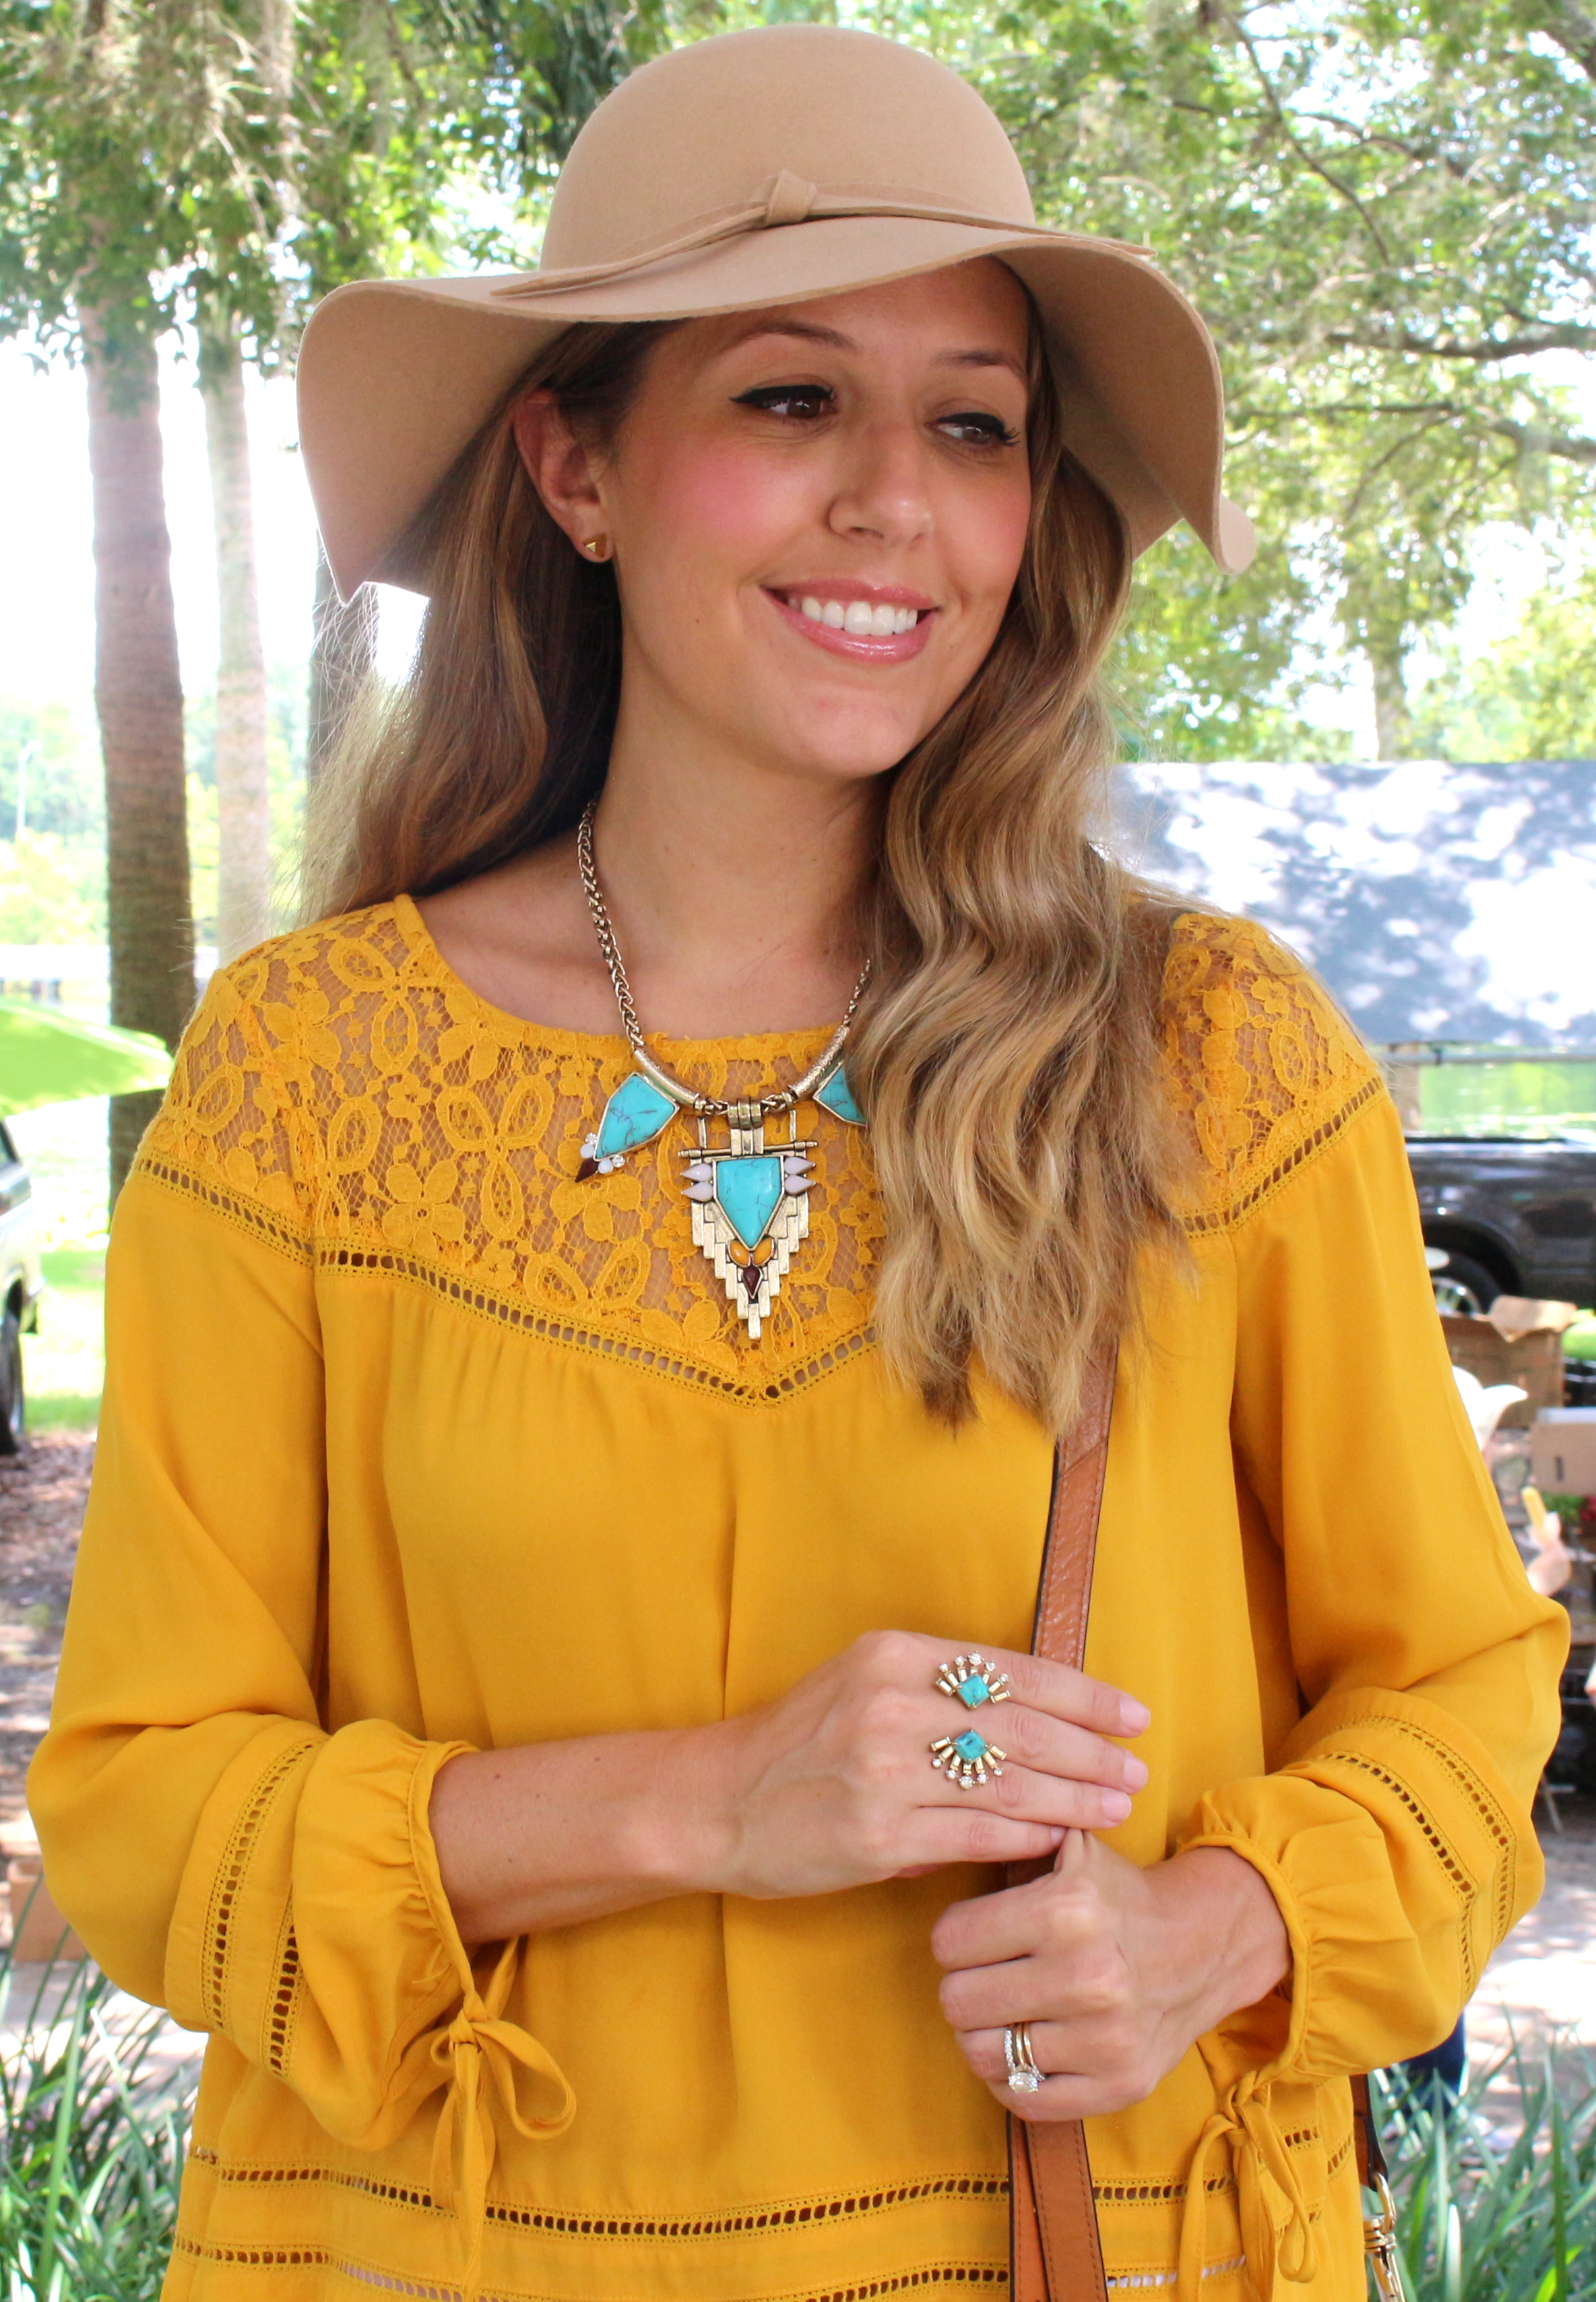 Mustard top with turquoise jewelry